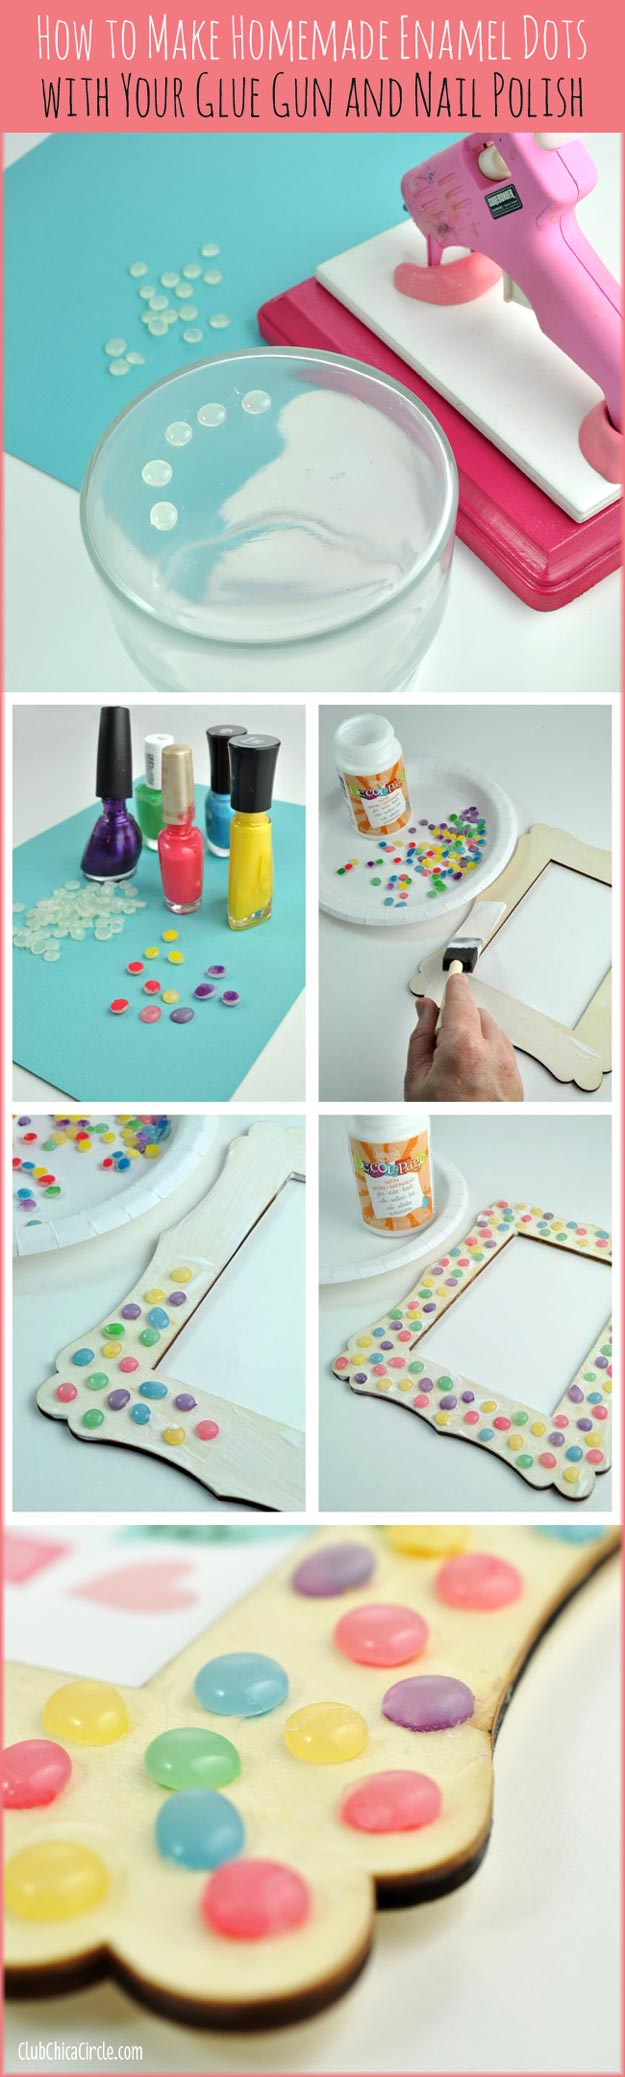 DIY Crafts Using Nail Polish